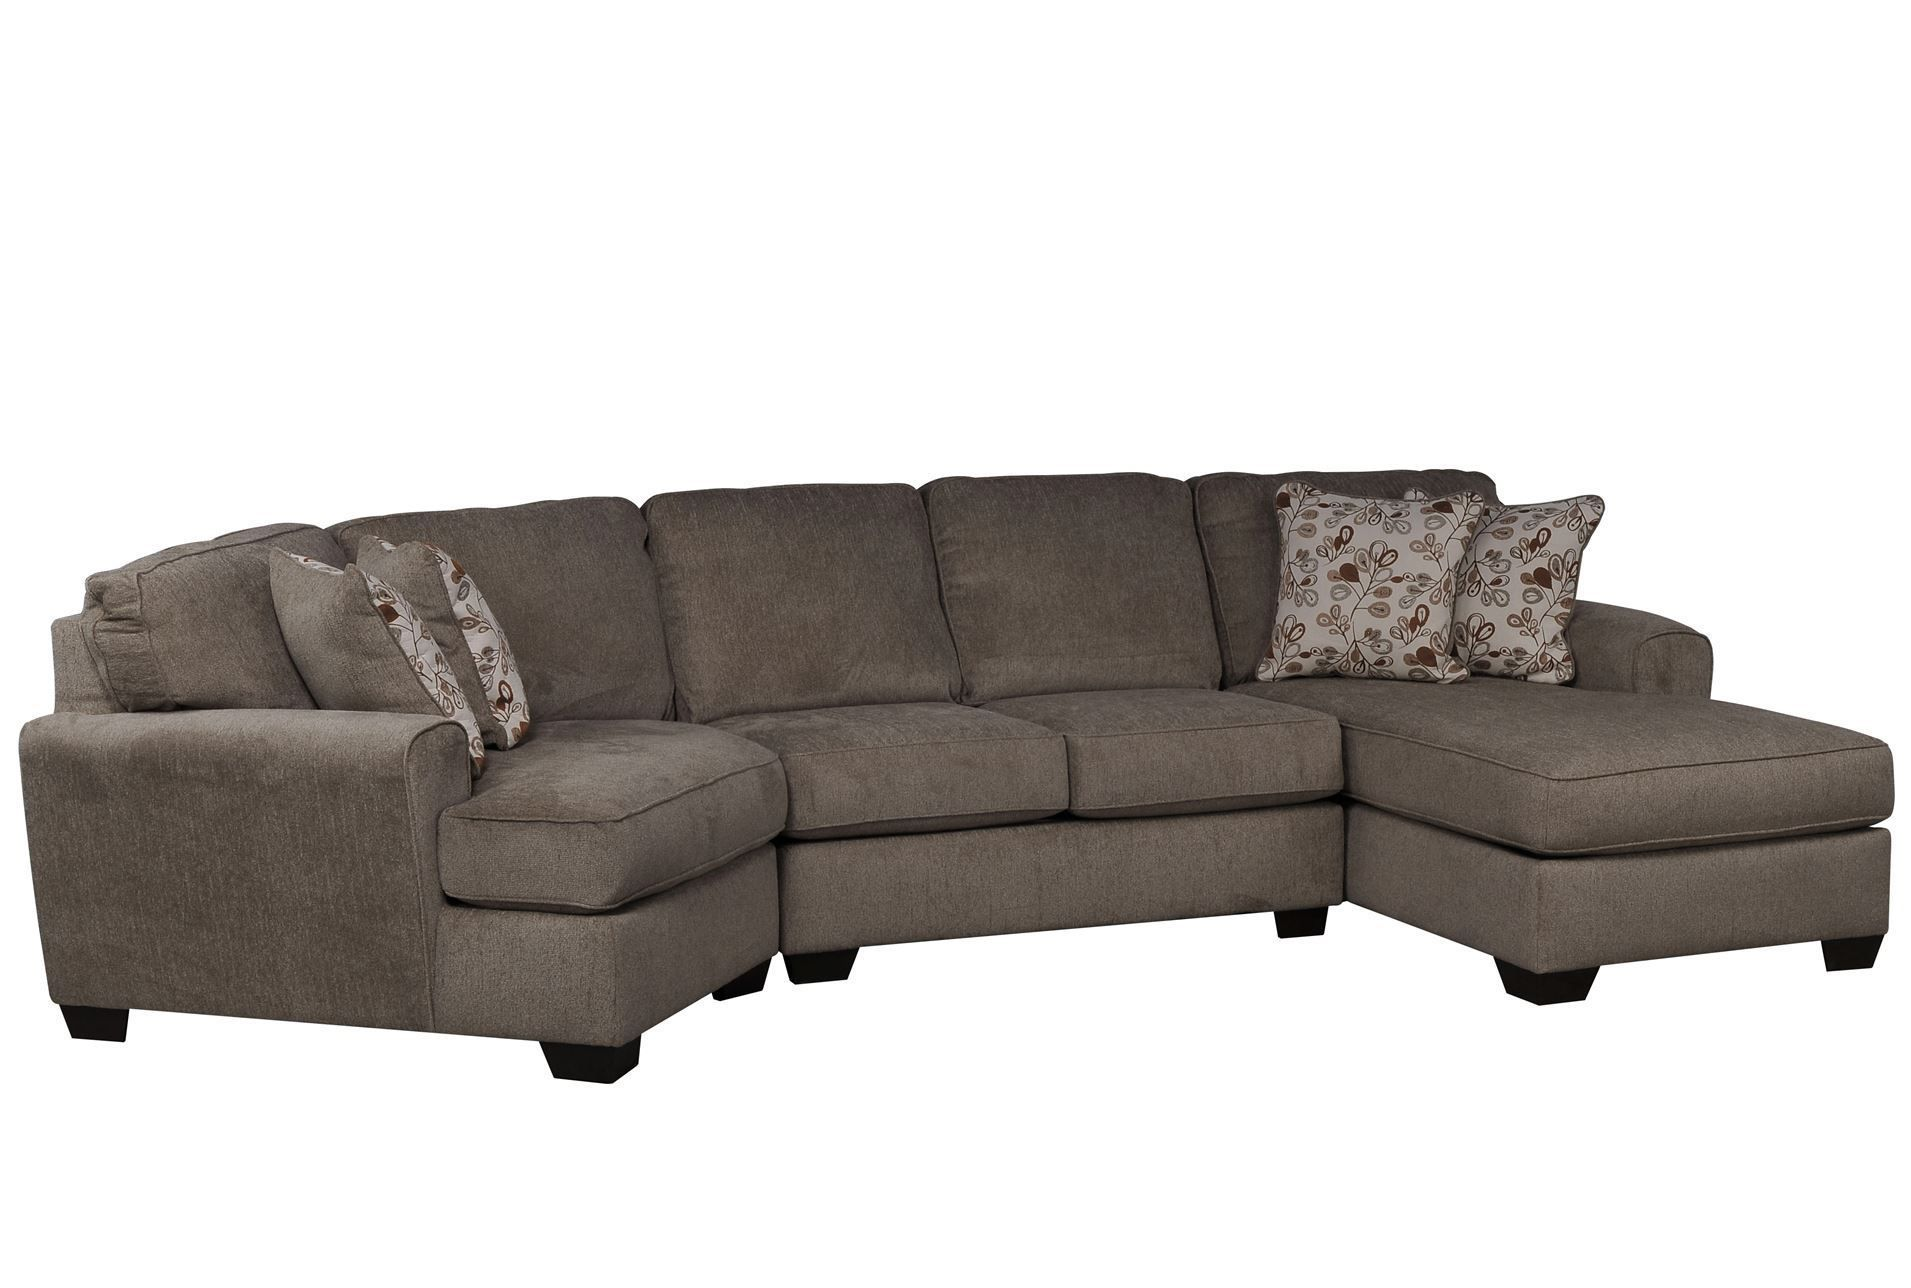 couch ashley sectional cuddler item piece right pantomine by benchcraft number with products